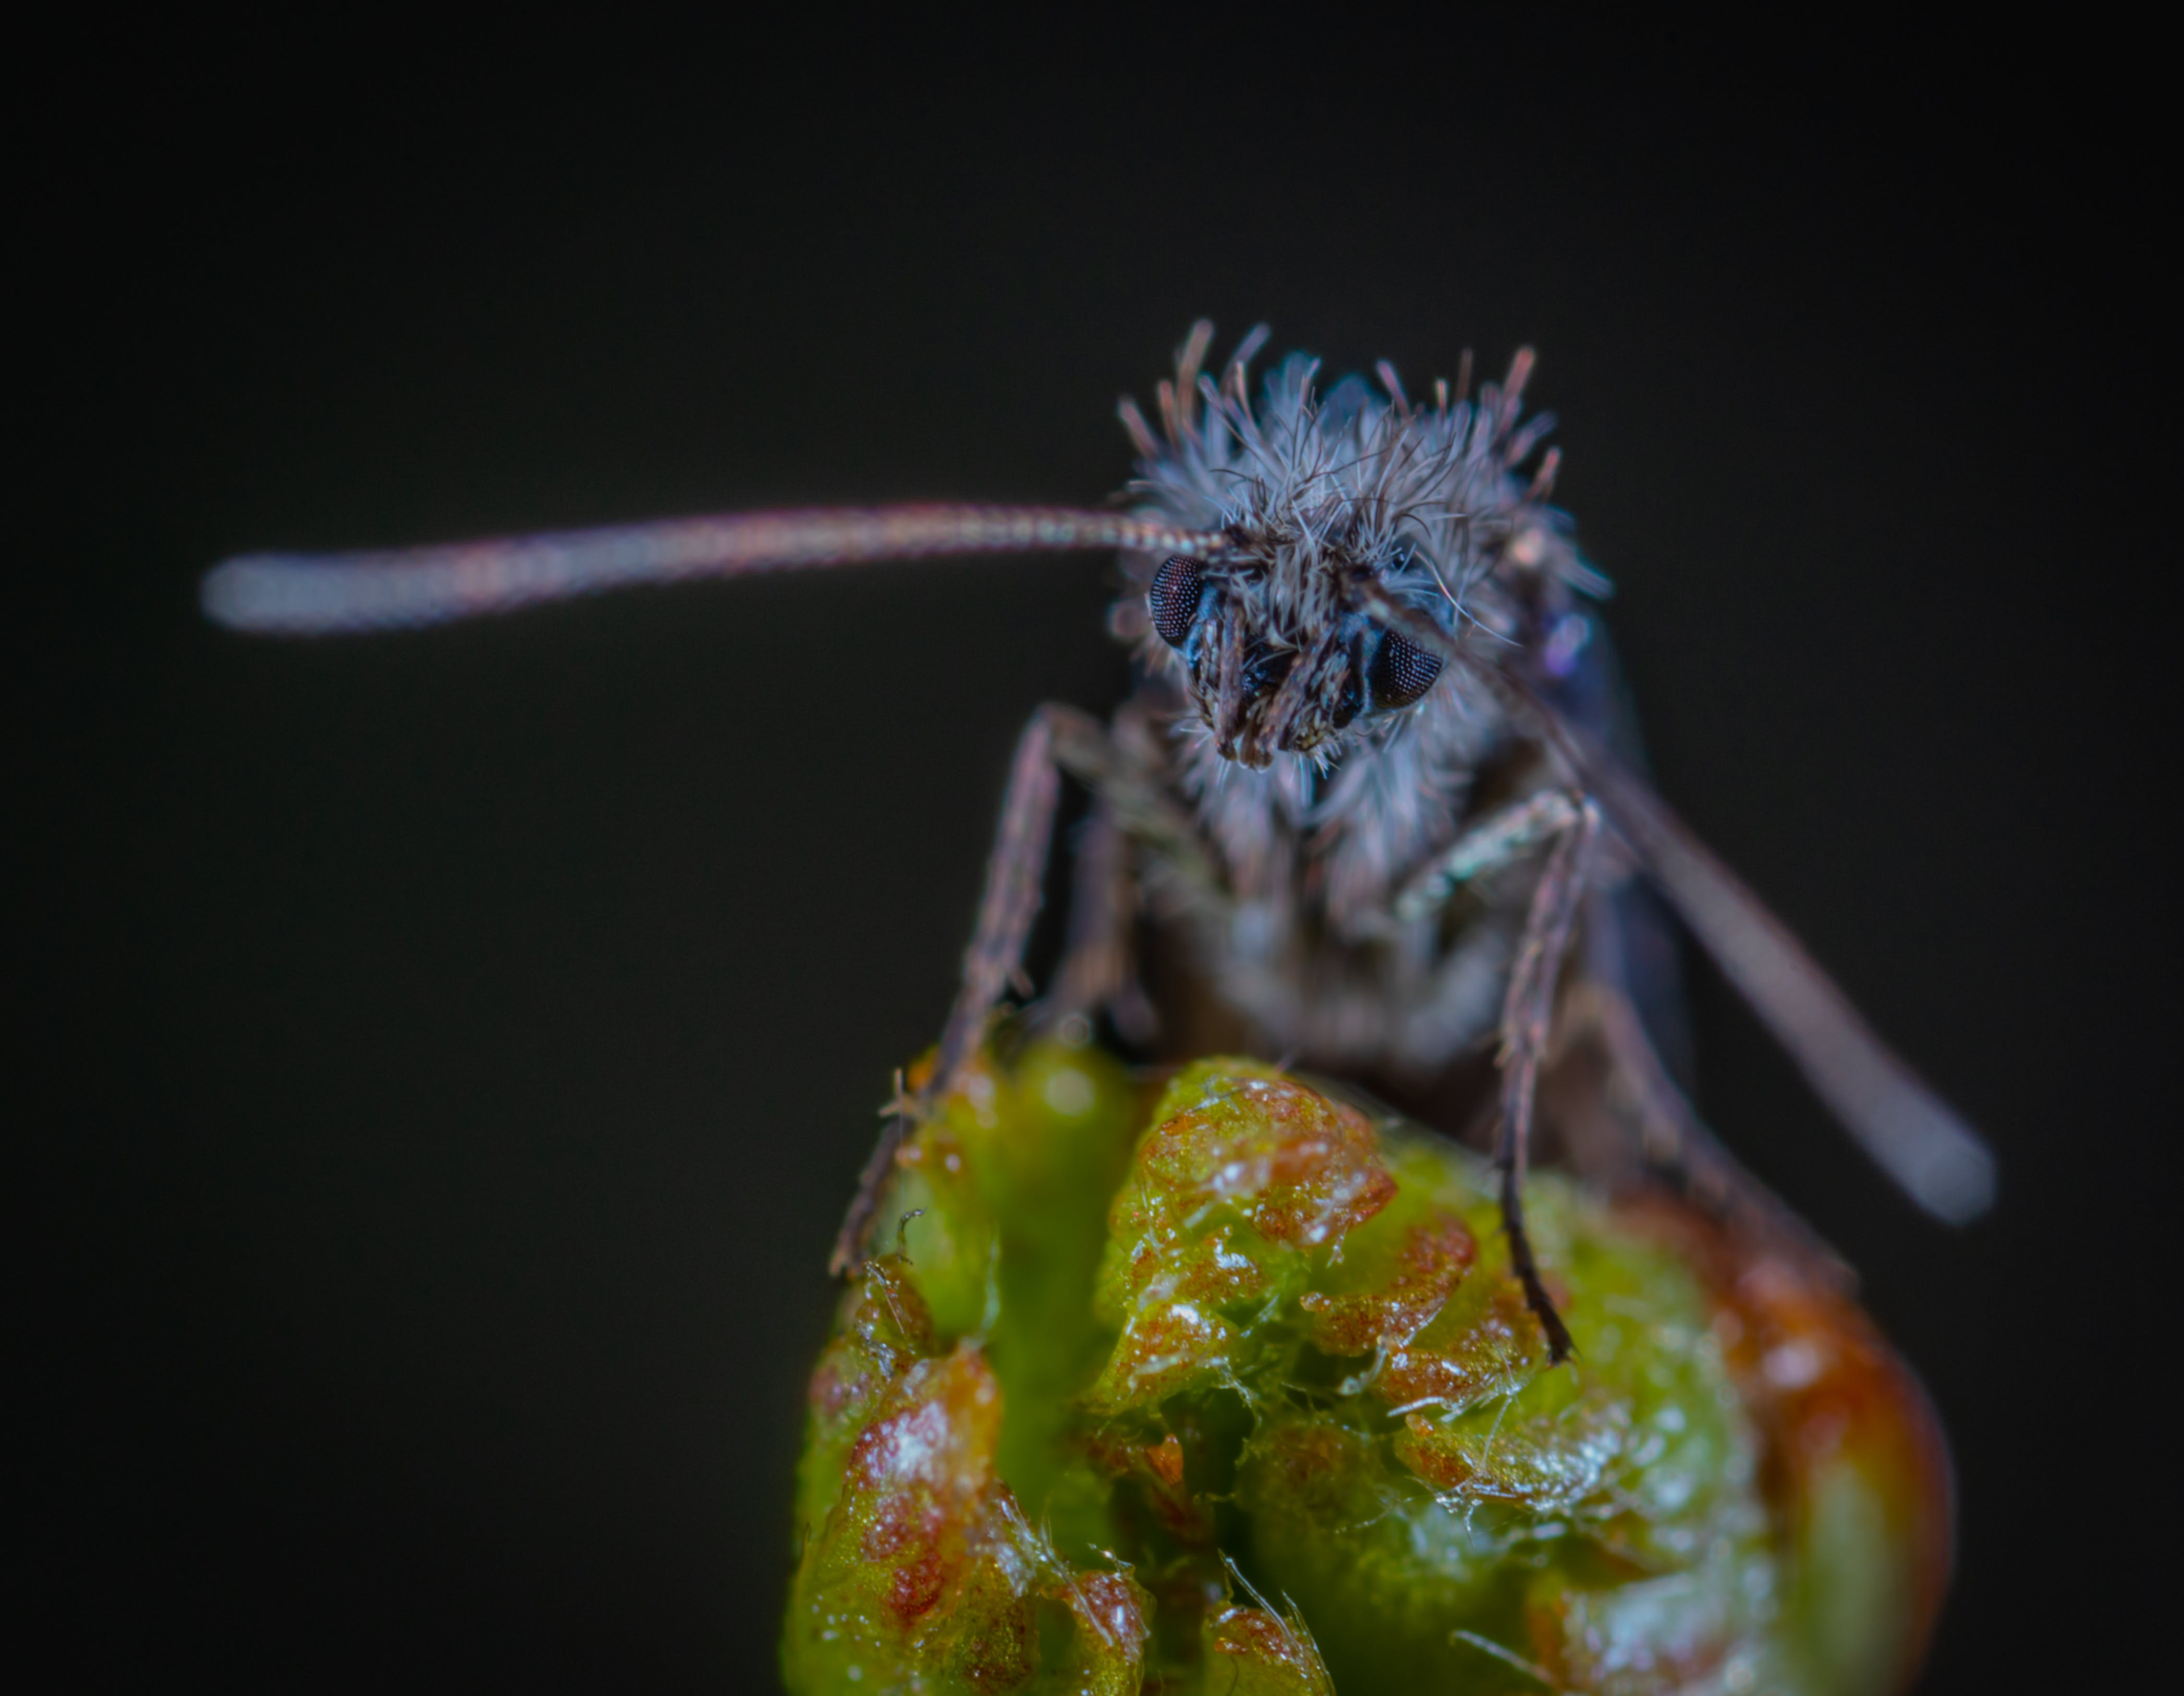 Macro Photography of Blue Moth